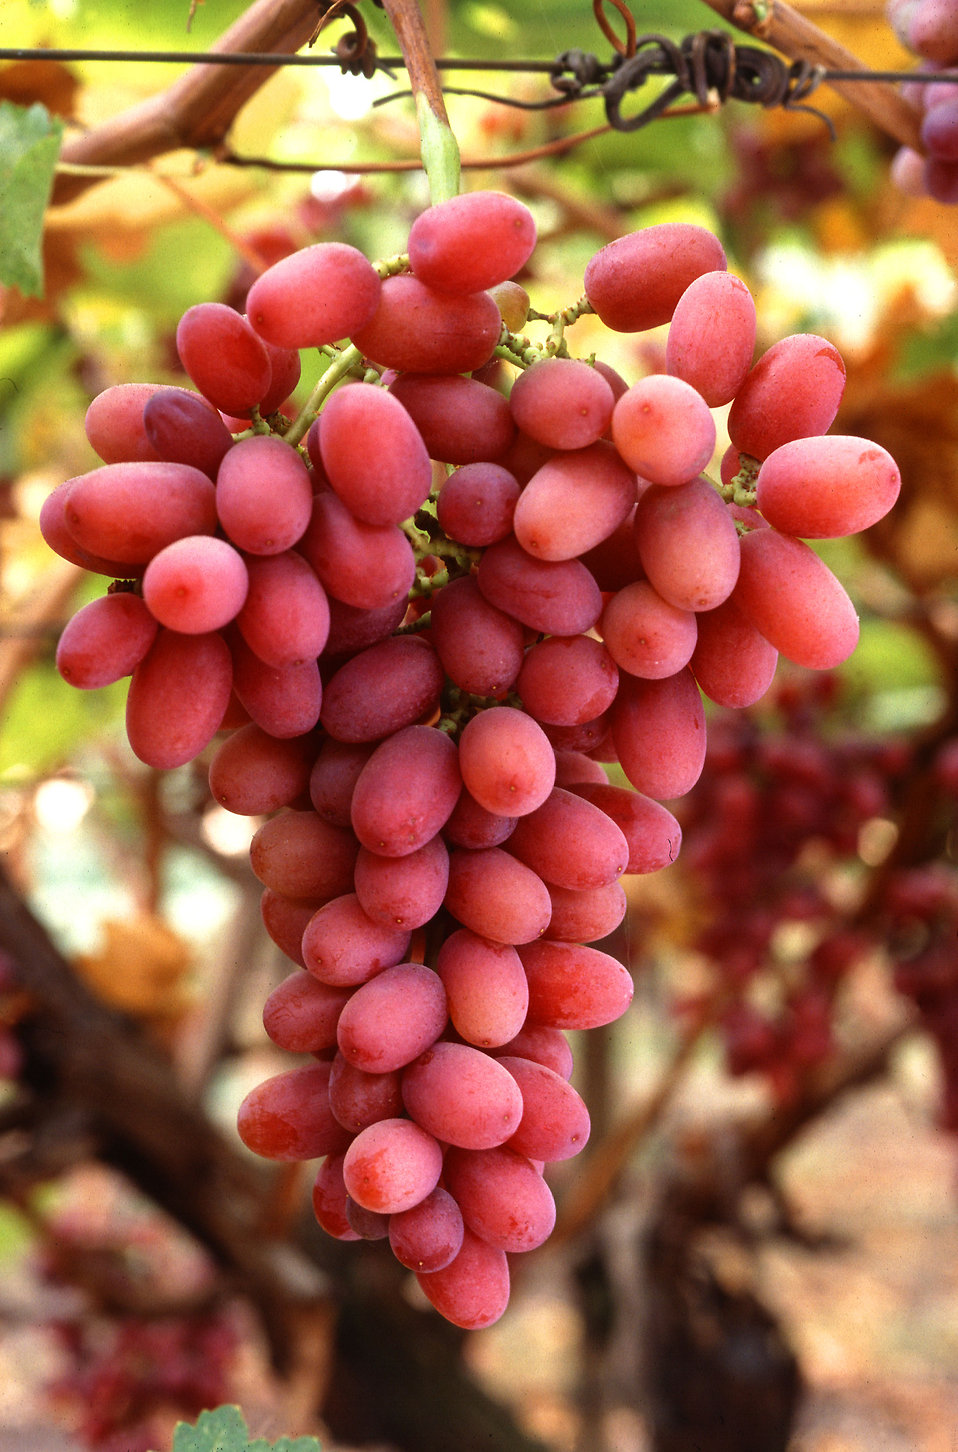 A bunch of red Crimson Seedless grapes : Free Stock Photo